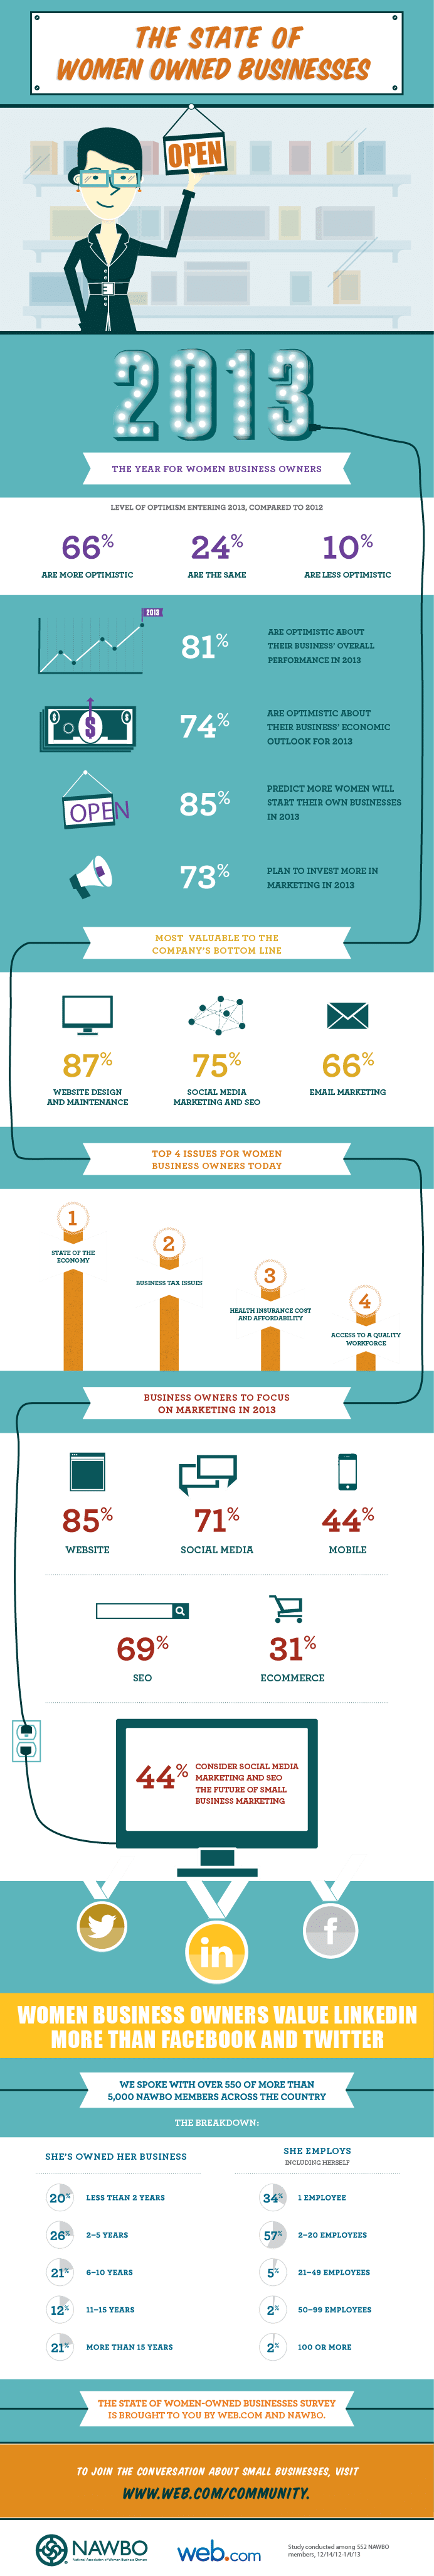 2013 state of women owned businesses